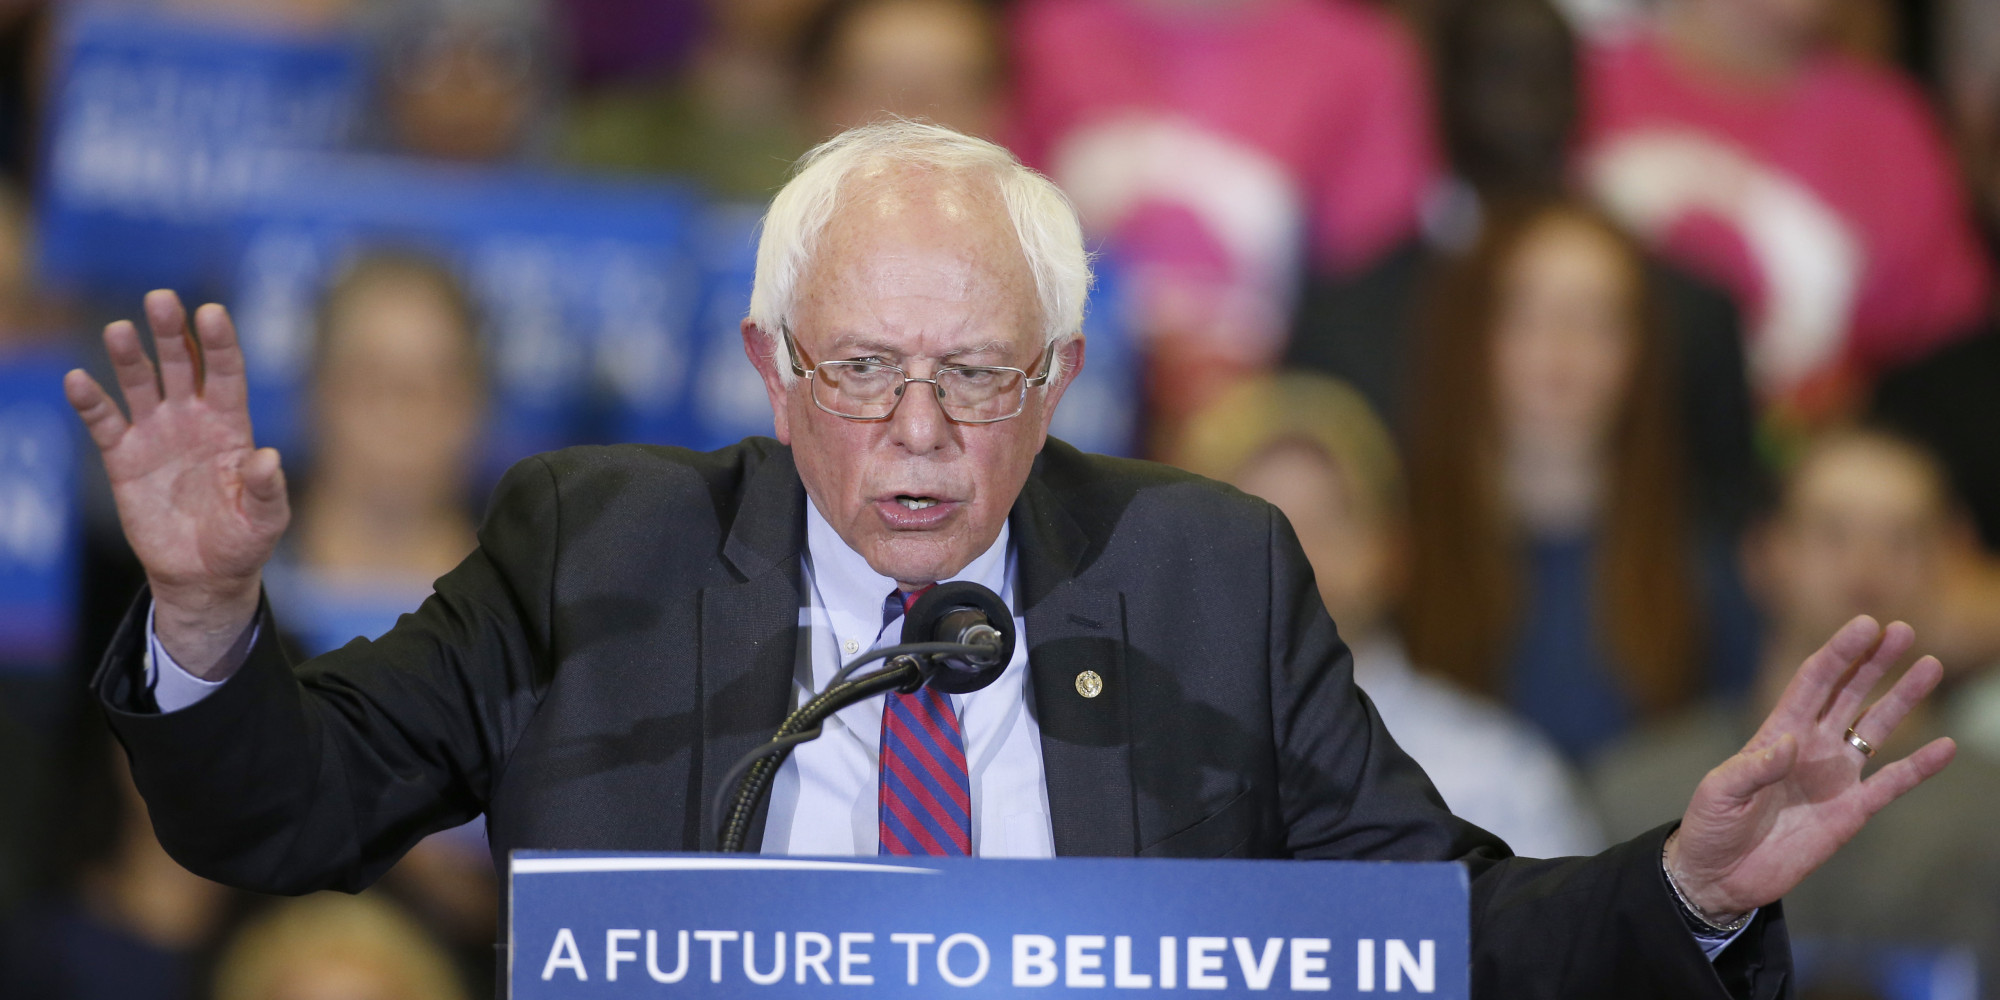 bernie sanders is currently winning the democratic primary race and